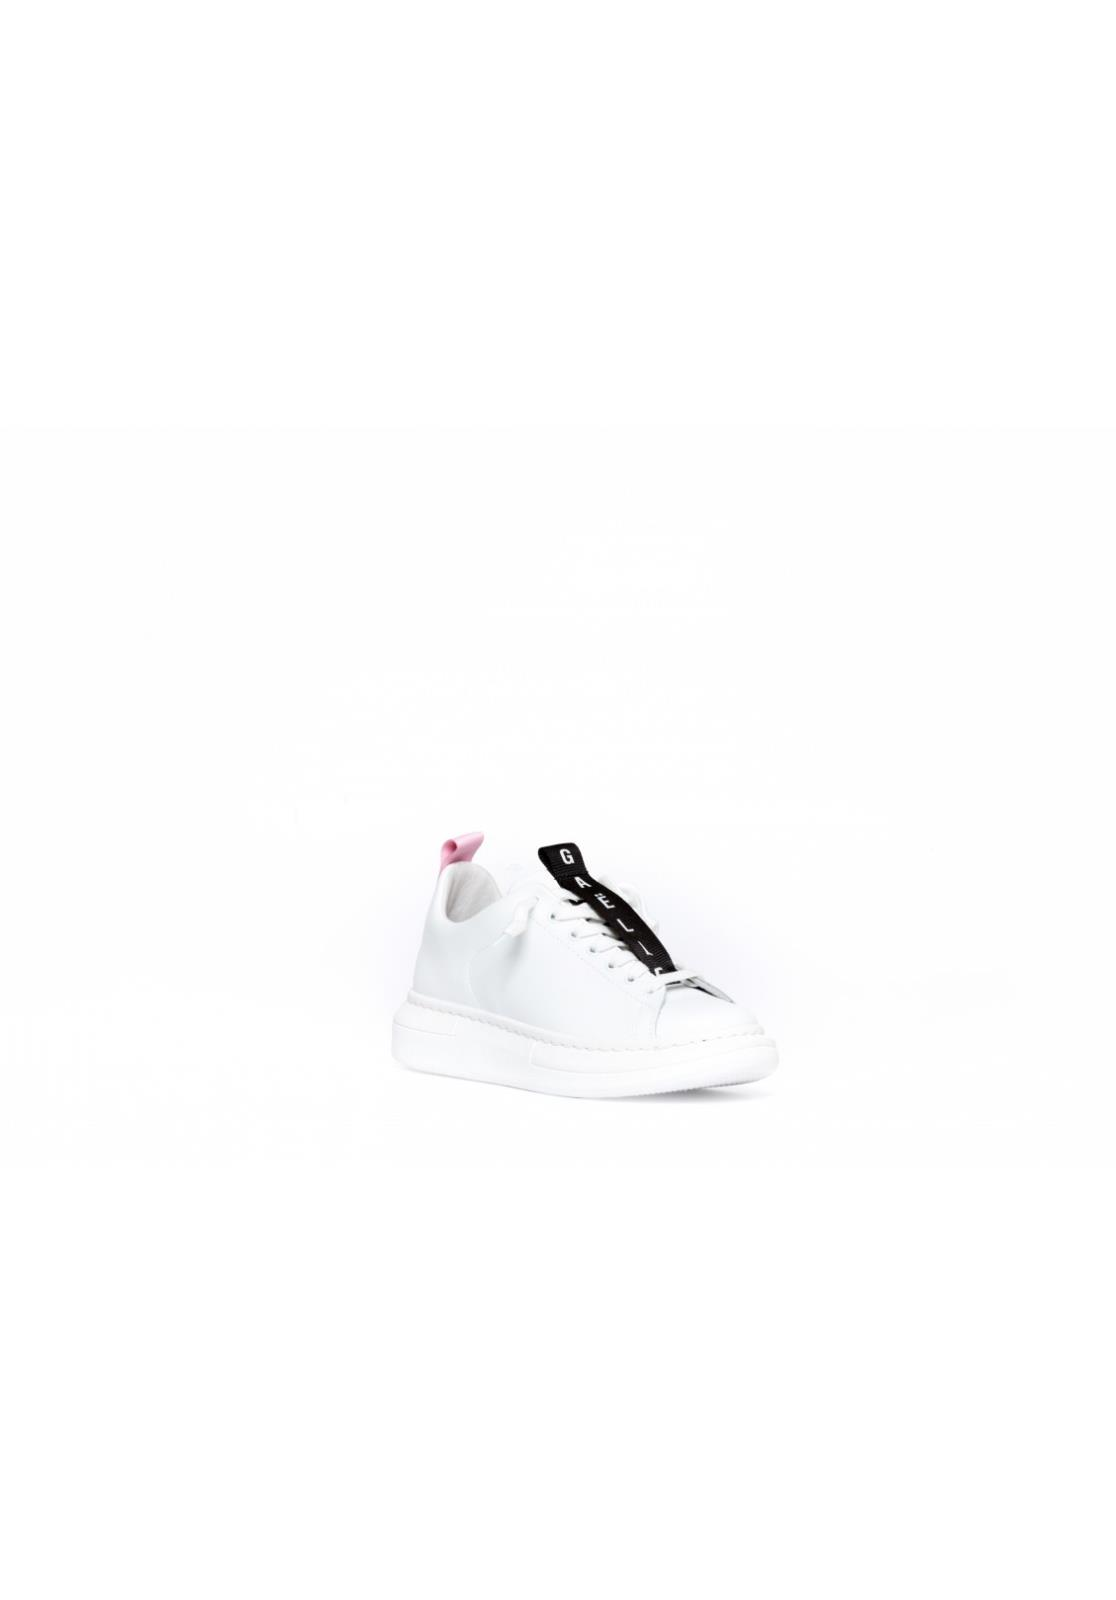 outlet wide range of GAëLLE Paris Sneakers footaction cheap price free shipping discounts pay with paypal for sale OhYot